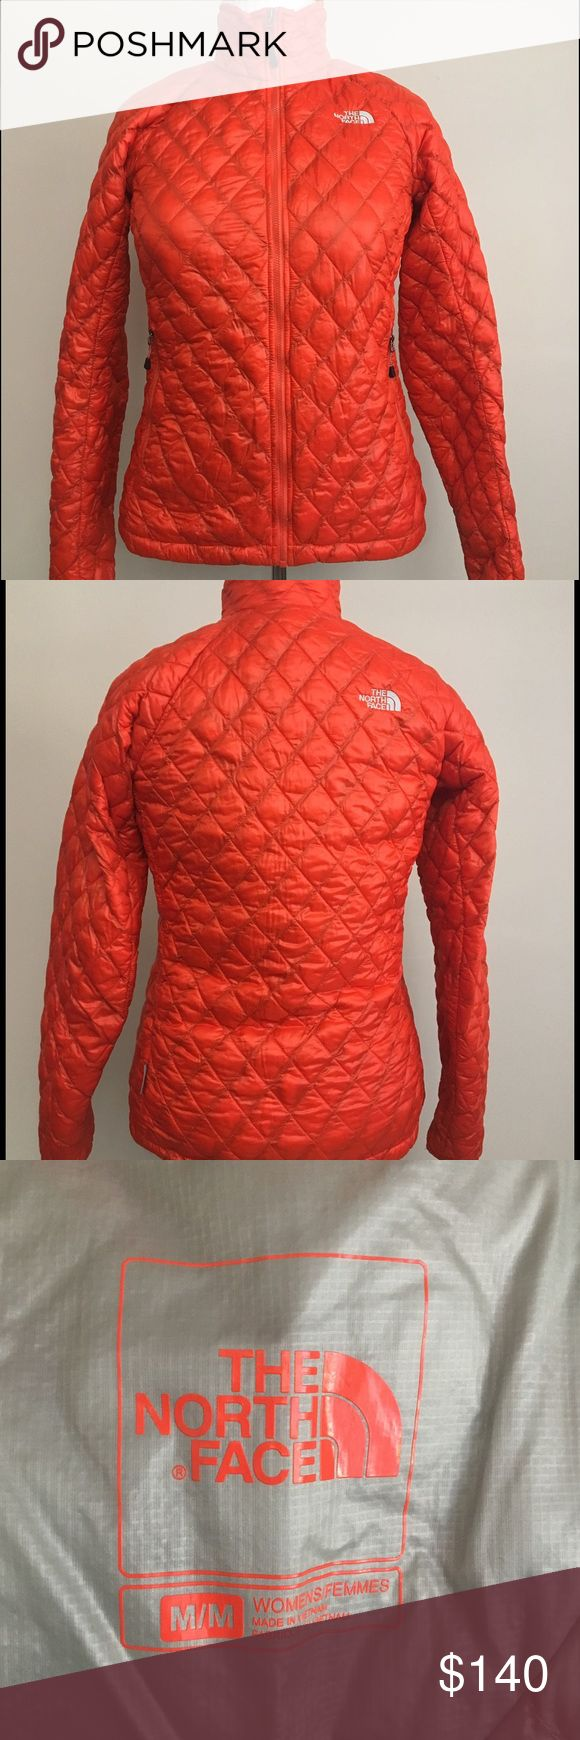 North face thermoball jacket spicy orange size MD Like new worn a few times! Fabulous condition.  Beautiful spicy orange color. No signs of wear! Lightweight great for packing or rolling into a small size and putting into a carry on or purse! North Face Jackets & Coats Utility Jackets